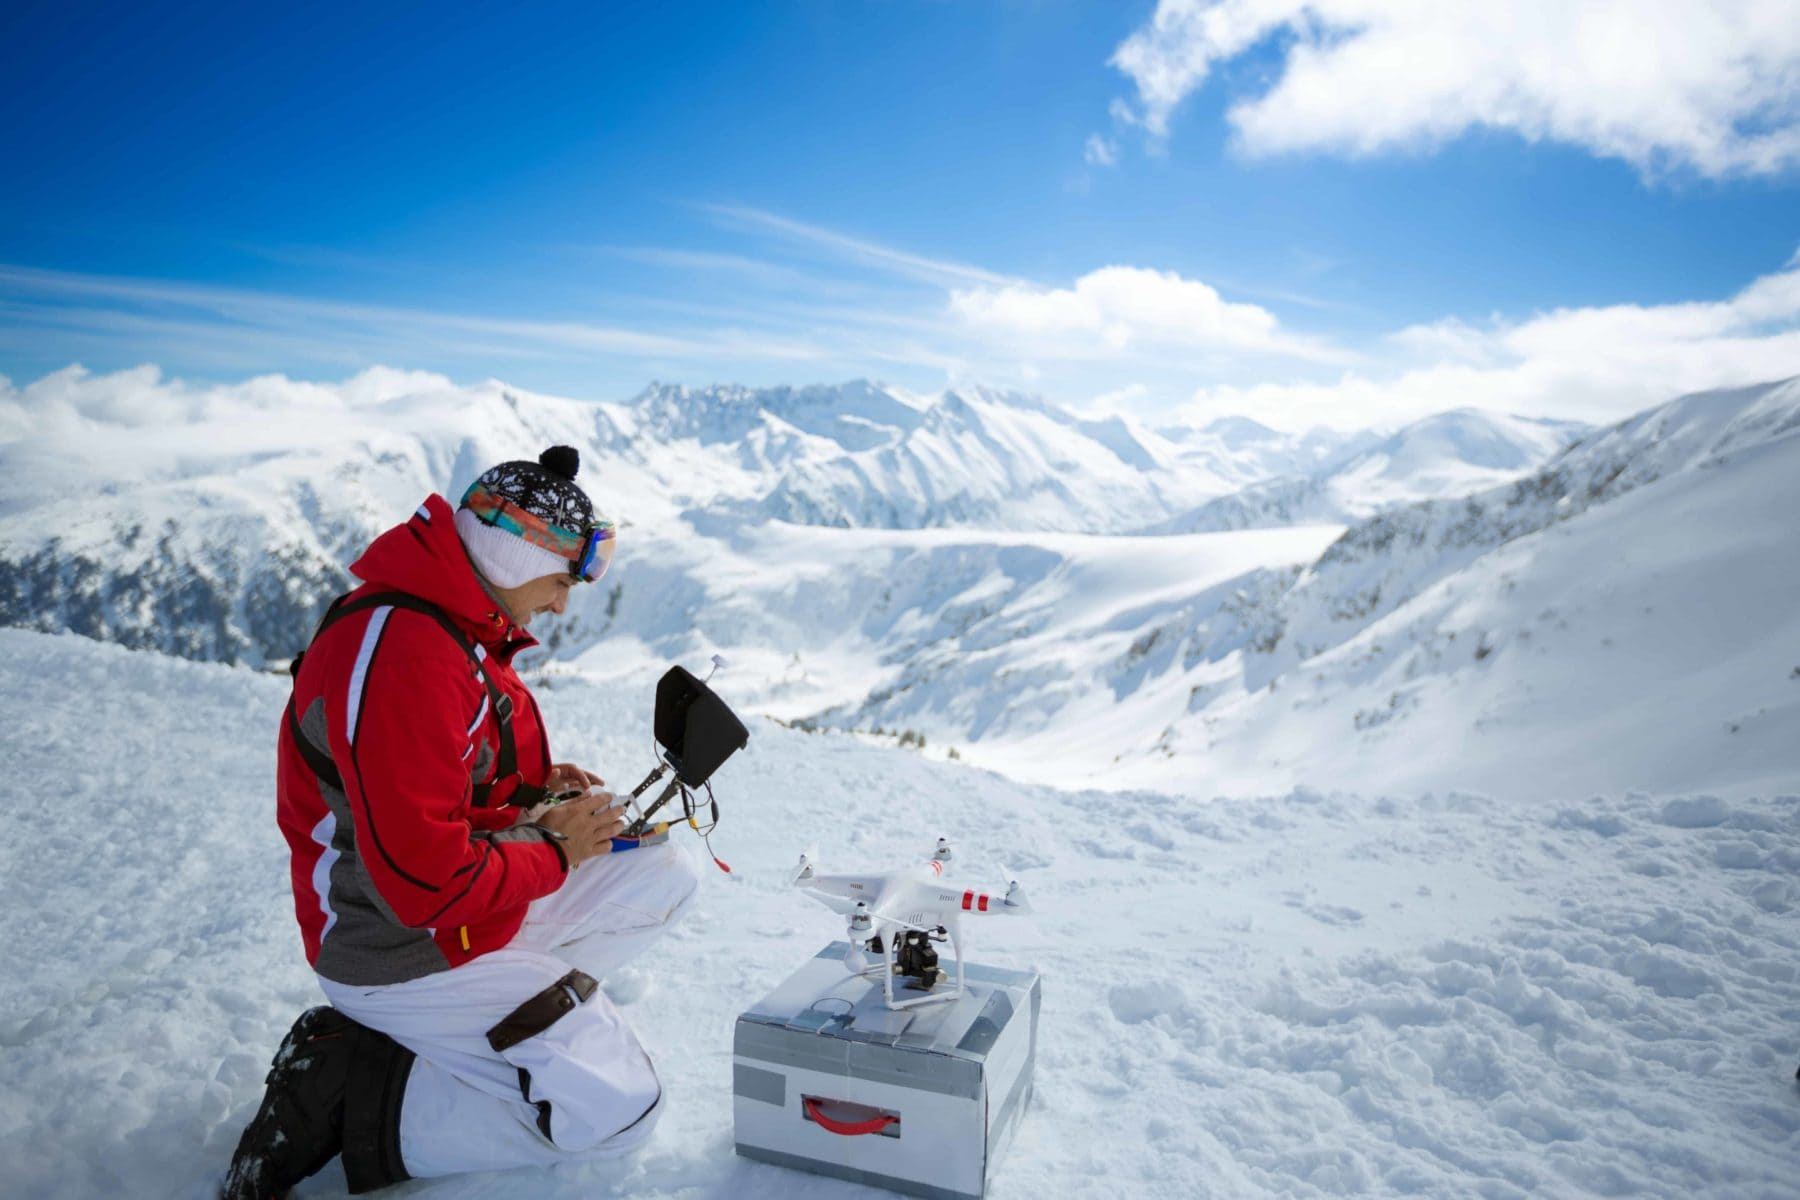 Flying Drones in Cold Weather, image of man in the snow operating a drone.